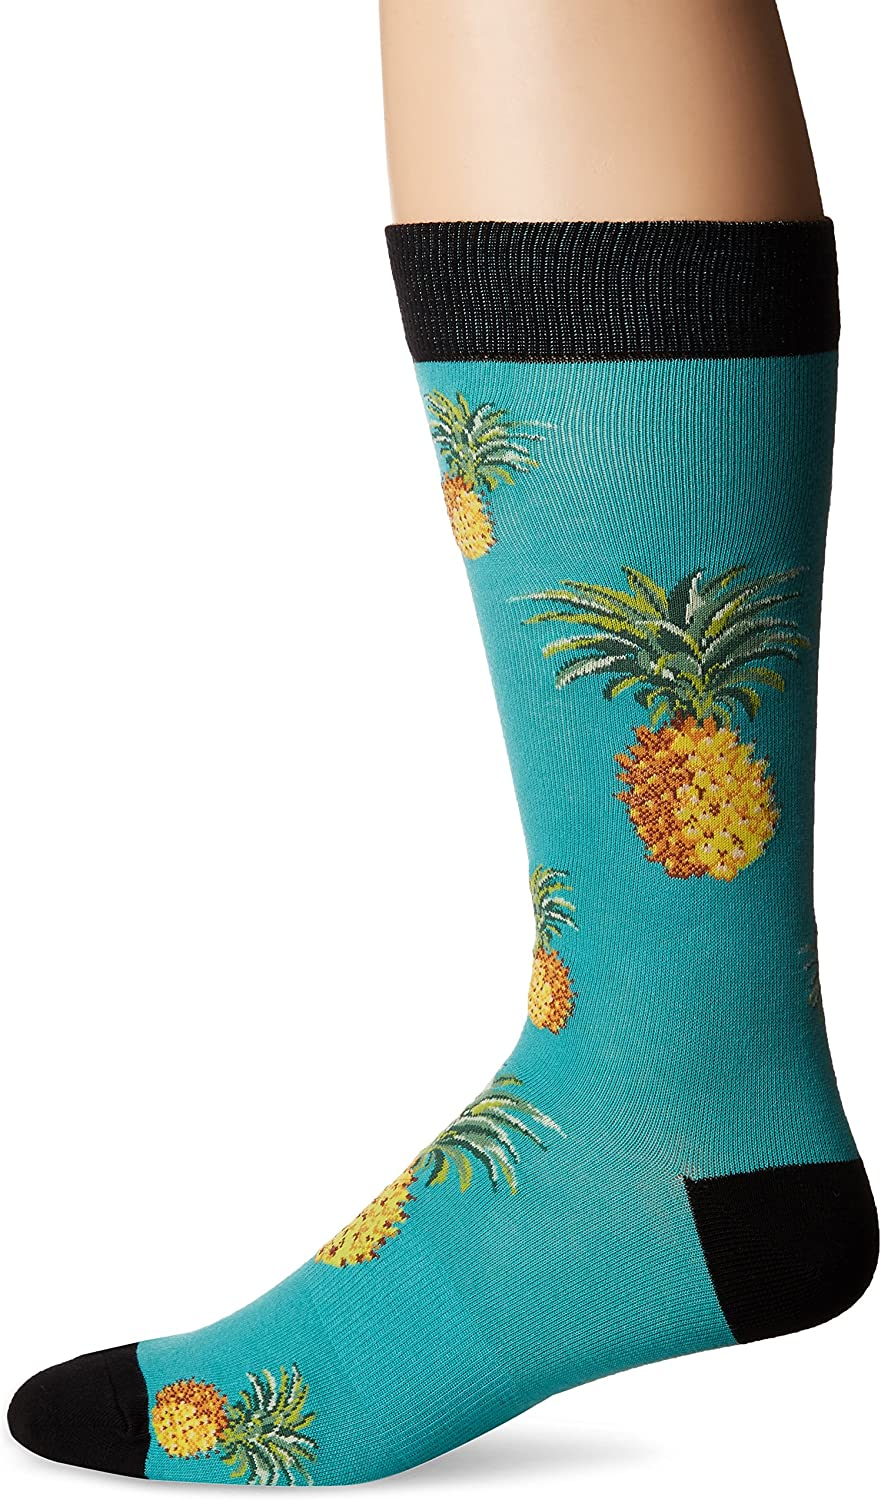 K. Bell Socks mens The Great Outdoors Novelty Crew Socks